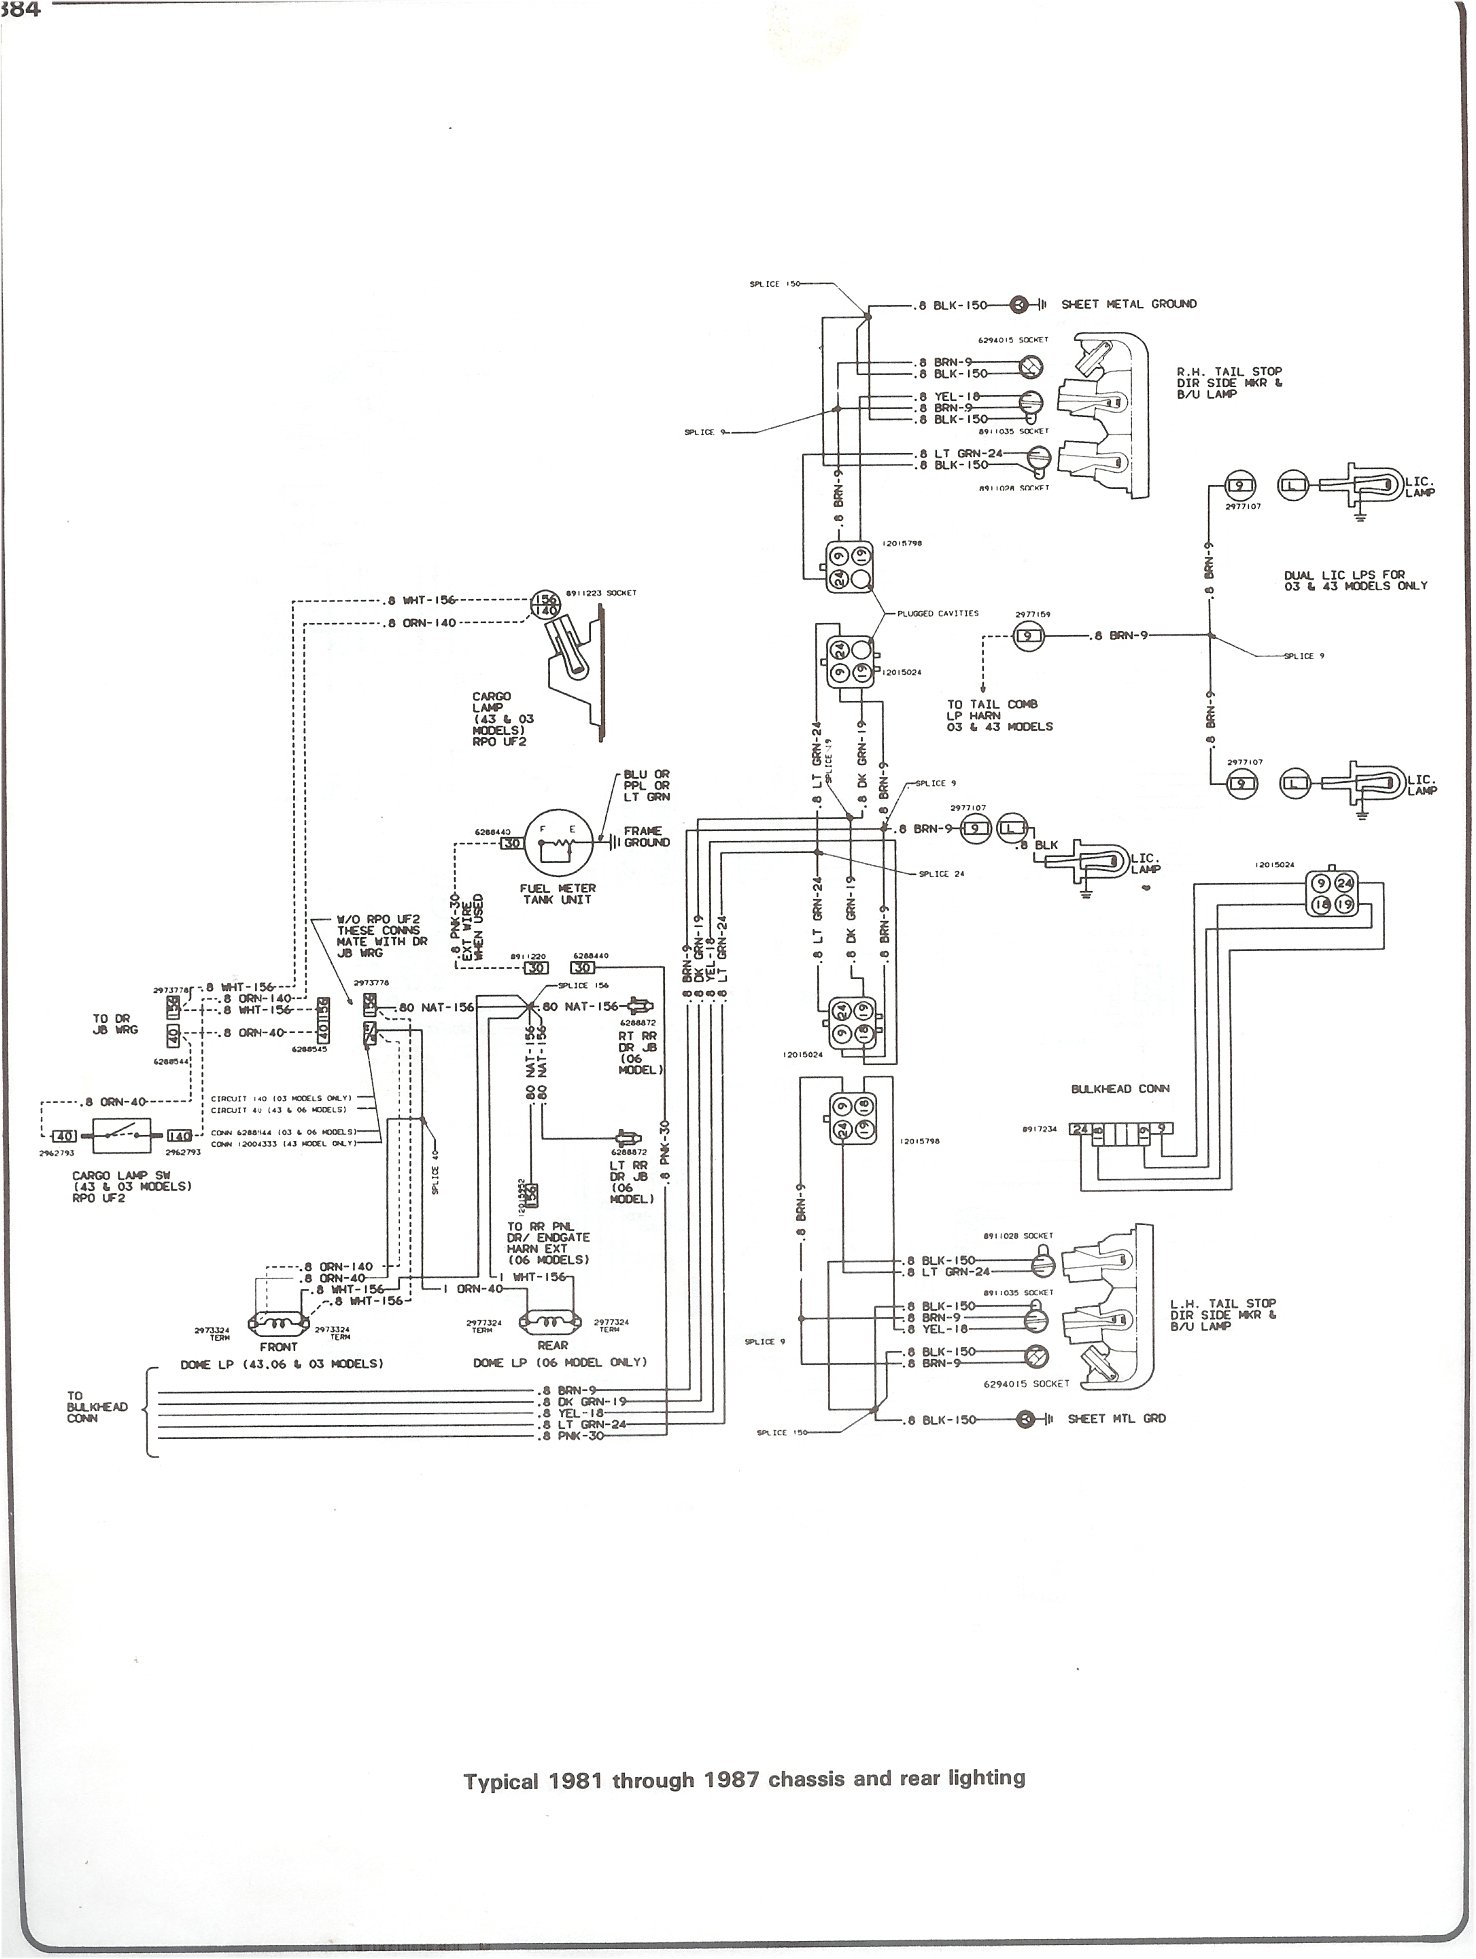 Chevy Truck Instrument Cluster Wiring Diagram on ford instrument cluster wiring diagram, chevy truck instrument cluster assembly, 2003 chevy silverado instrument cluster wiring diagram, 2004 chevy silverado instrument cluster wiring diagram, chevy truck body diagram, audi instrument cluster wiring diagram,